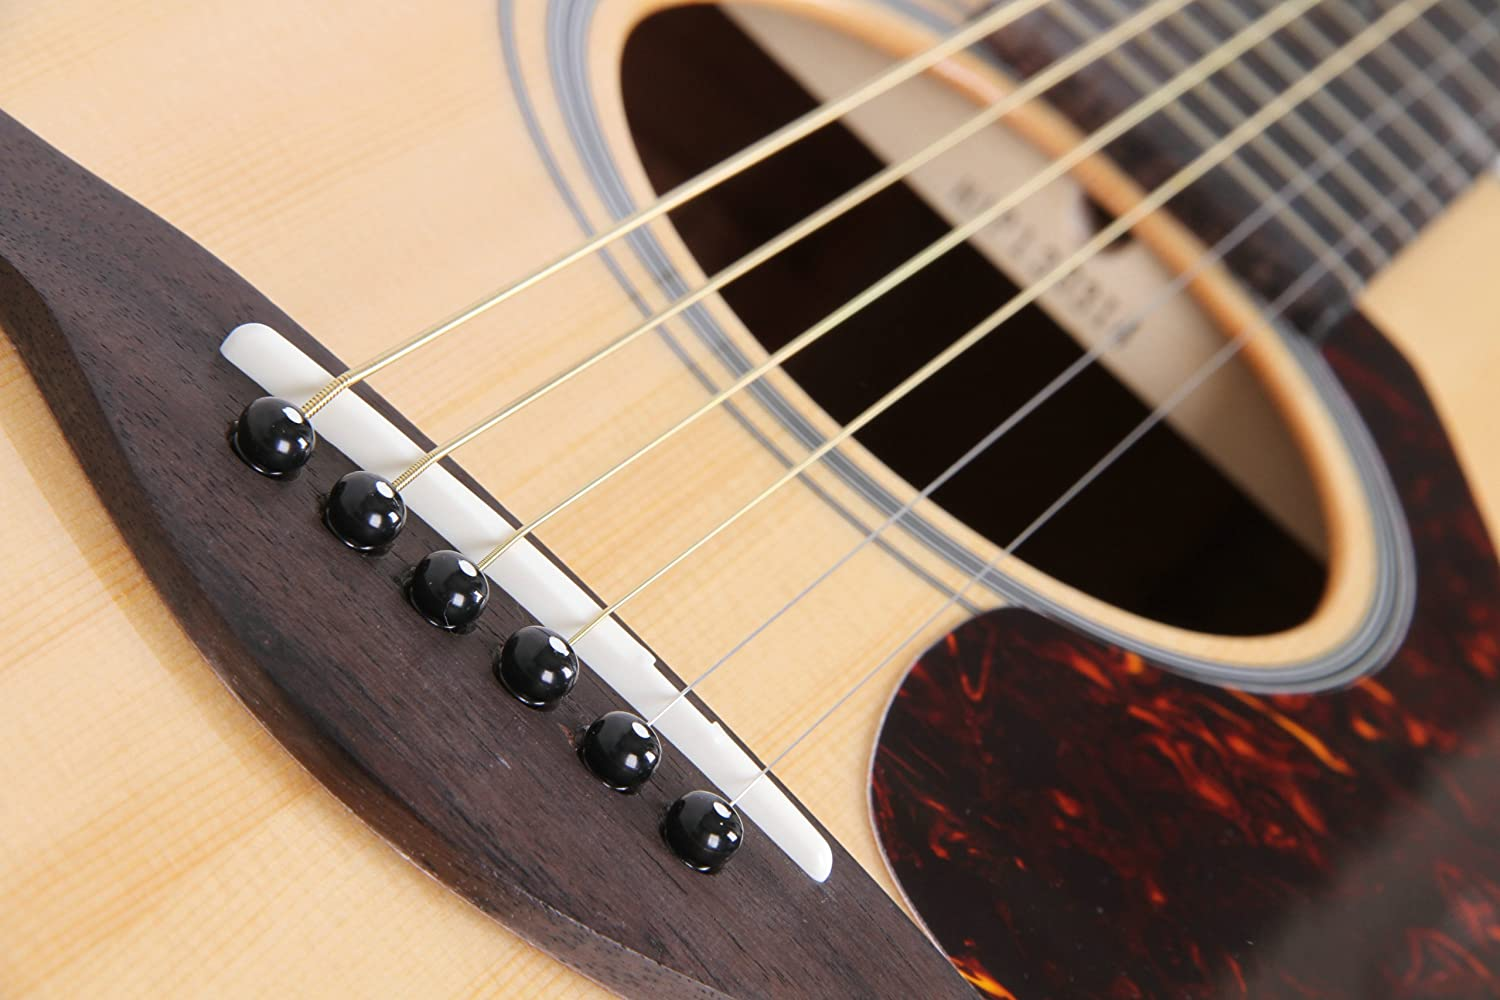 Acoustic guitar good for beginners